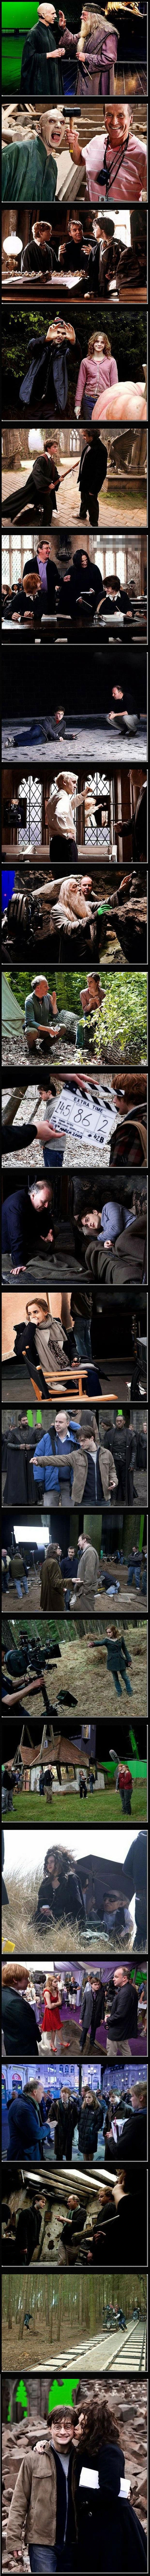 Behind the scenes of Harry Potter movie